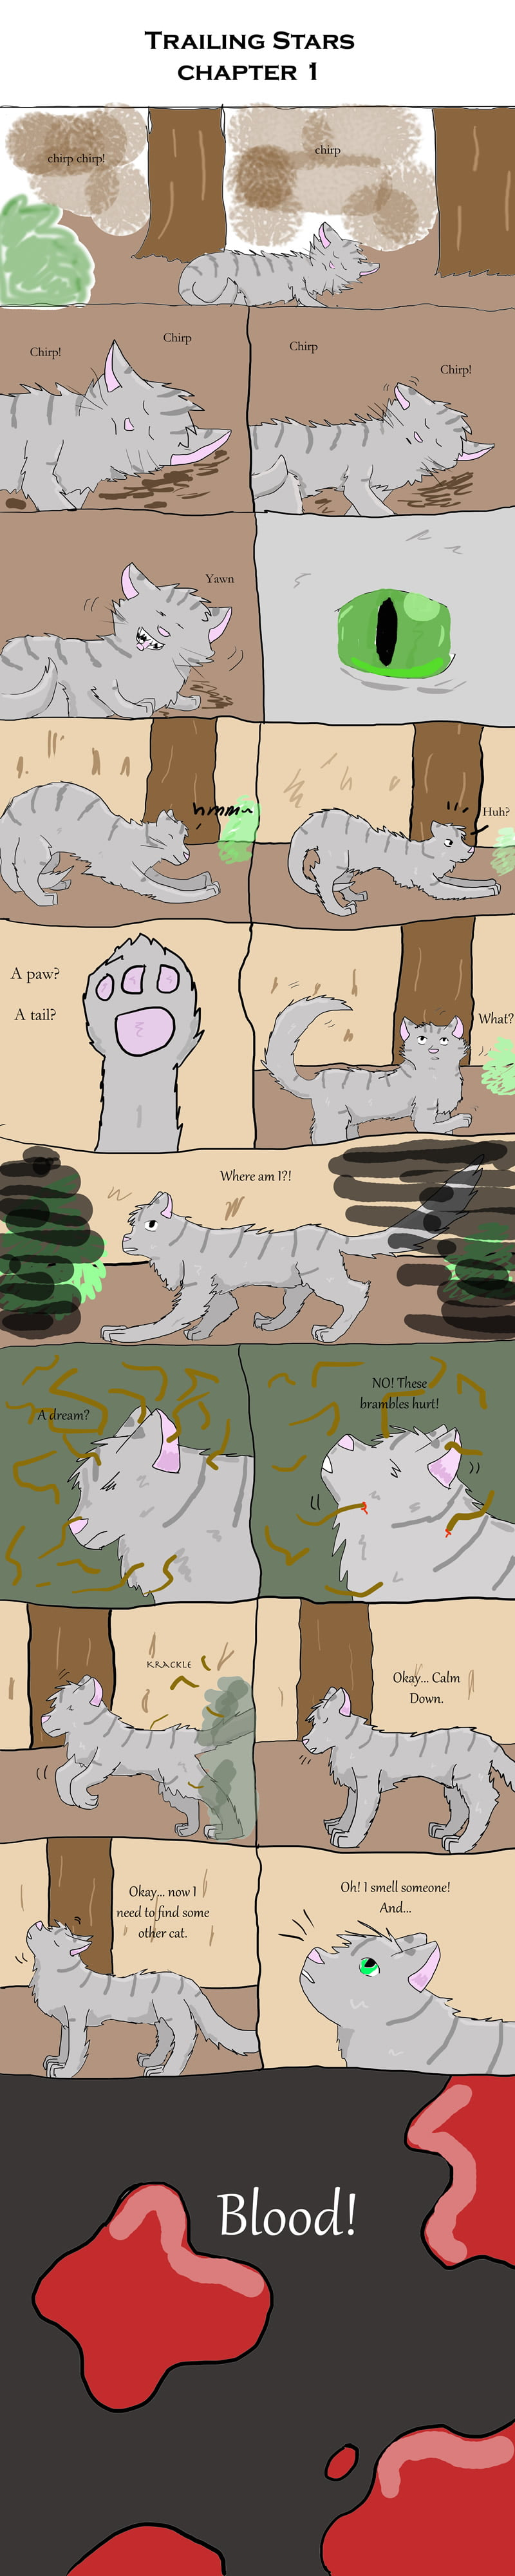 trailing-stars-part1-by-Sleetwing1